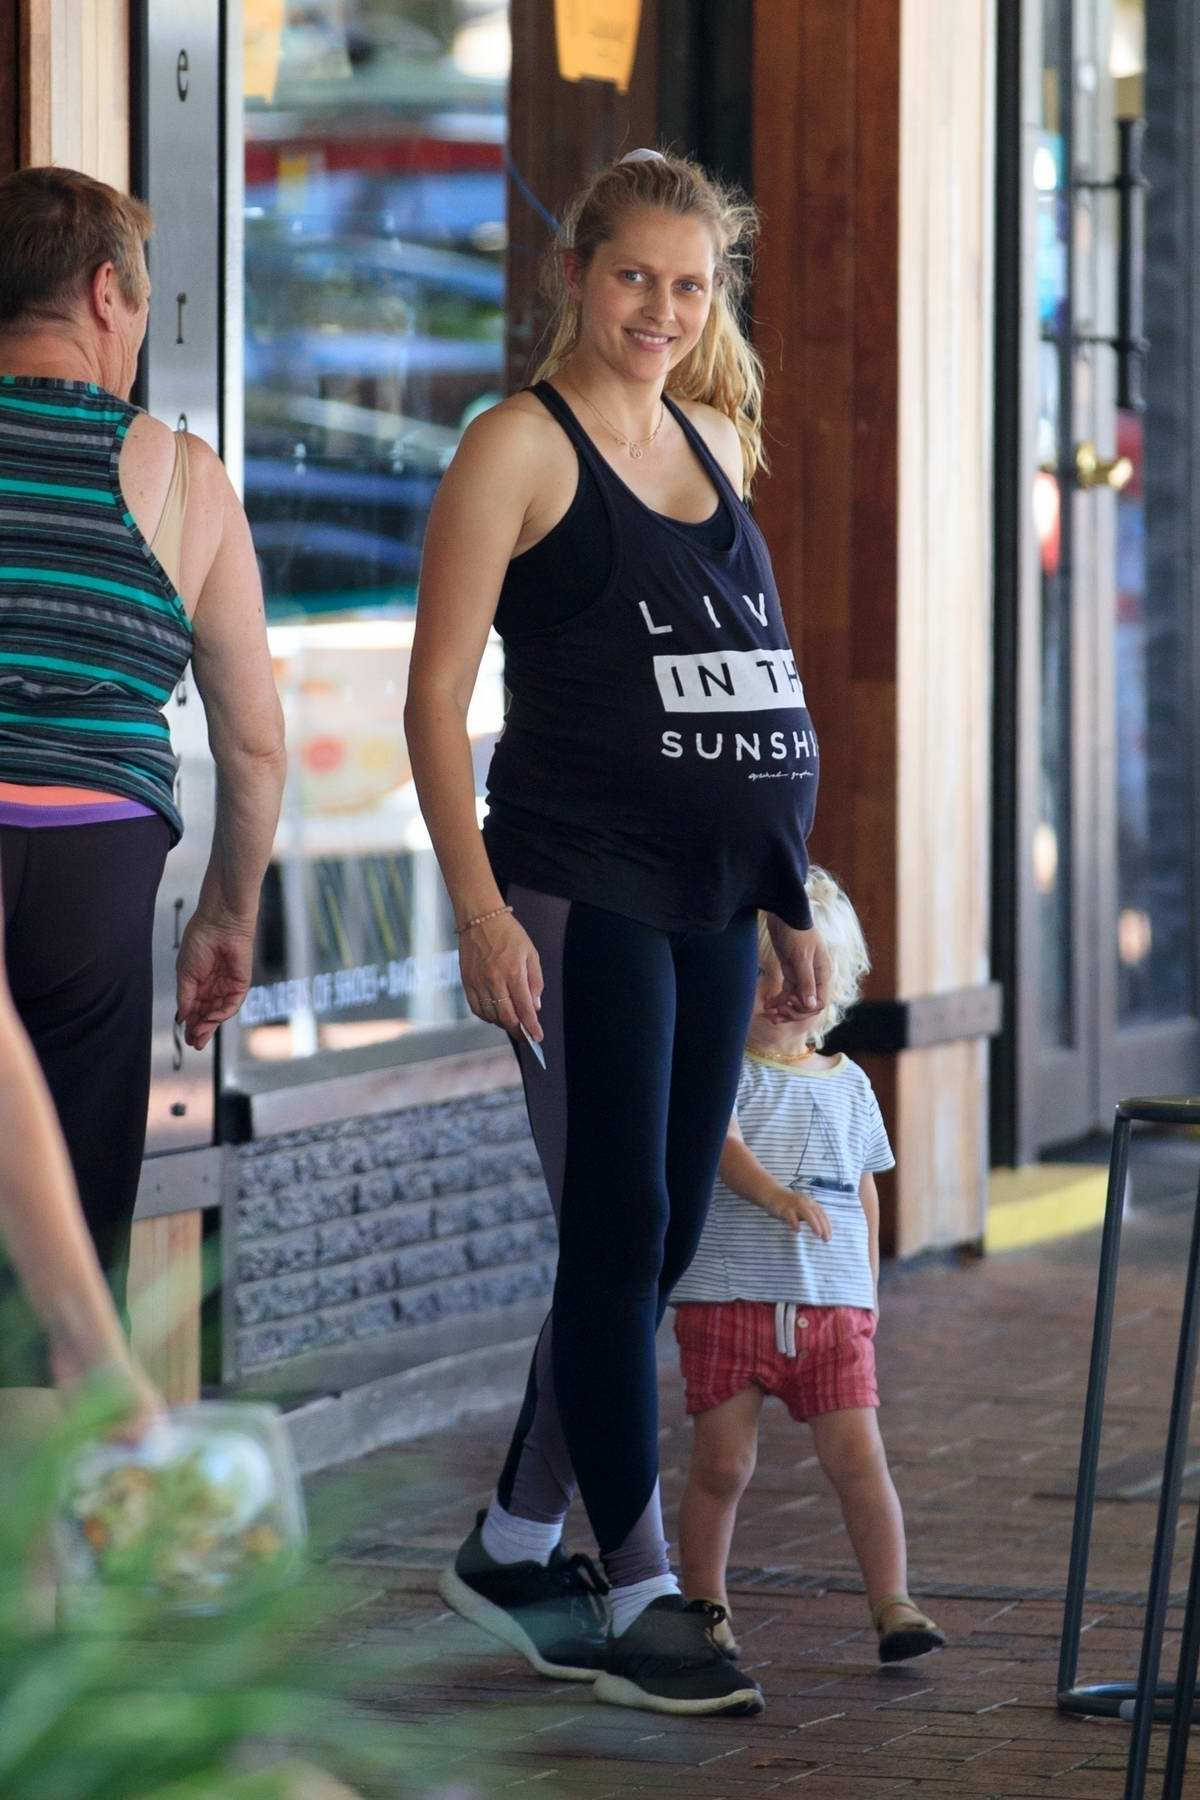 Teresa Palmer shows off her baby bump in a black tank top and leggings while out for some shopping in Adelaide, Australia